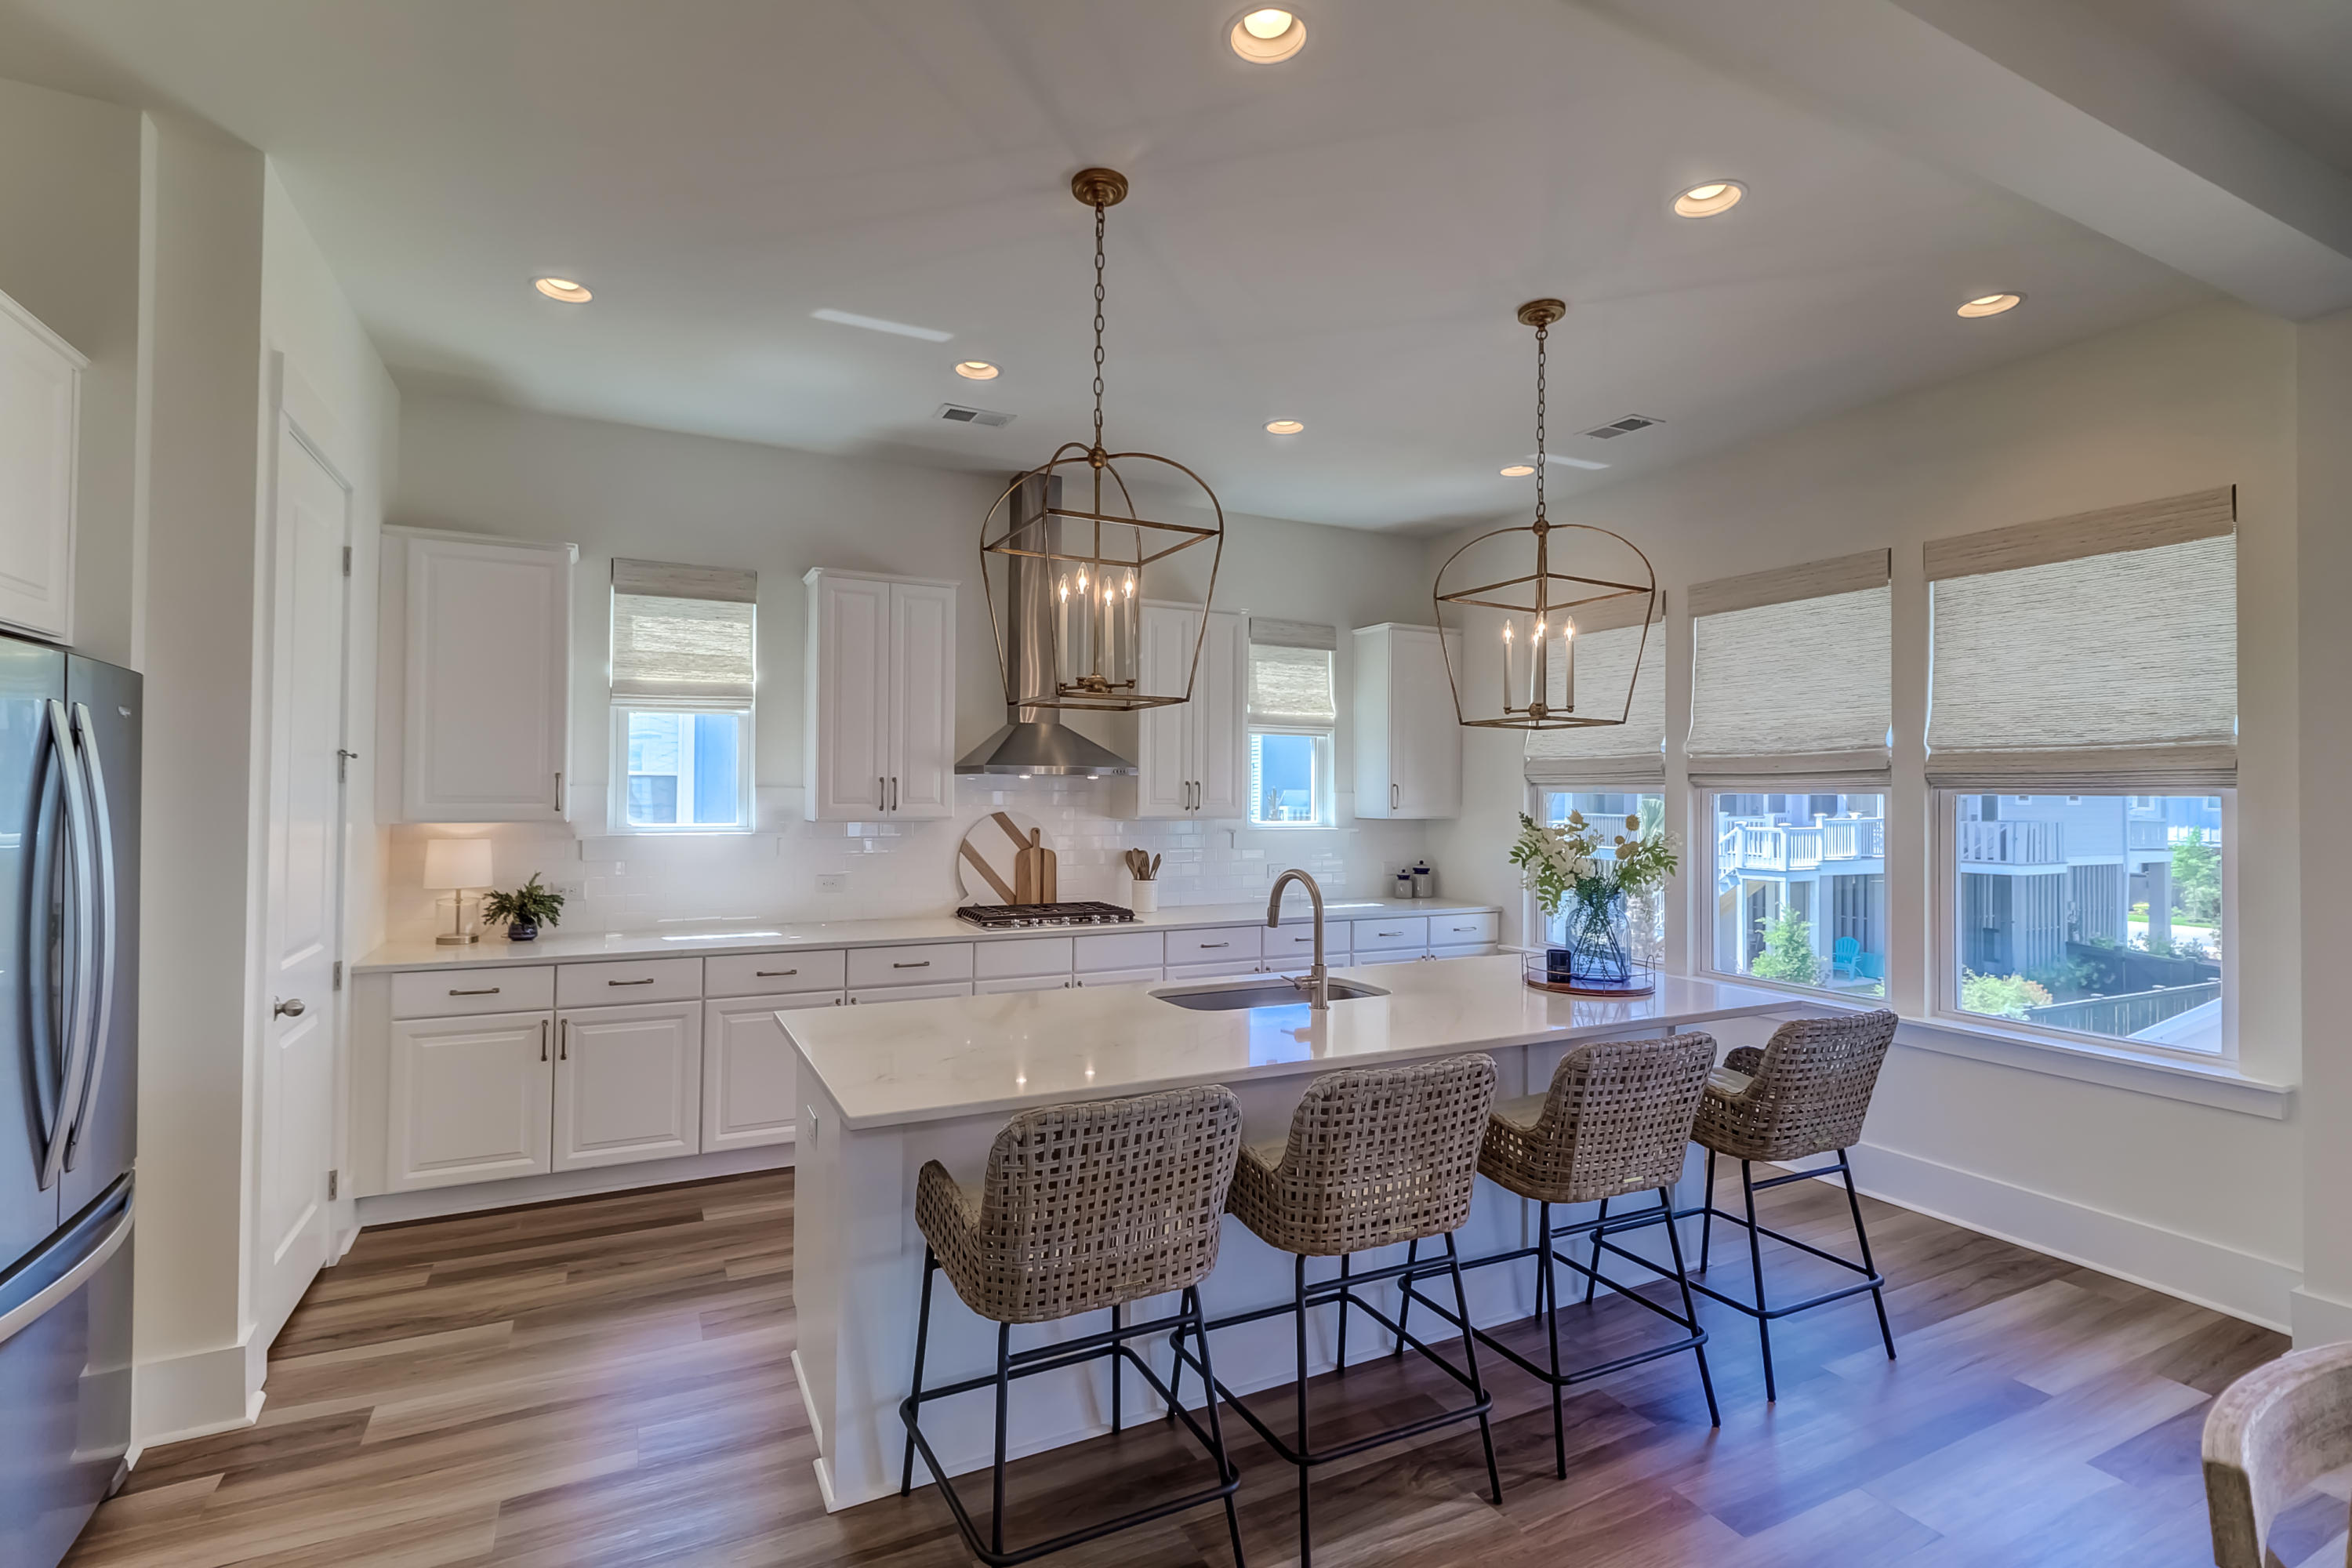 Stratton by the Sound Homes For Sale - 3609 Tidal Flat, Mount Pleasant, SC - 34